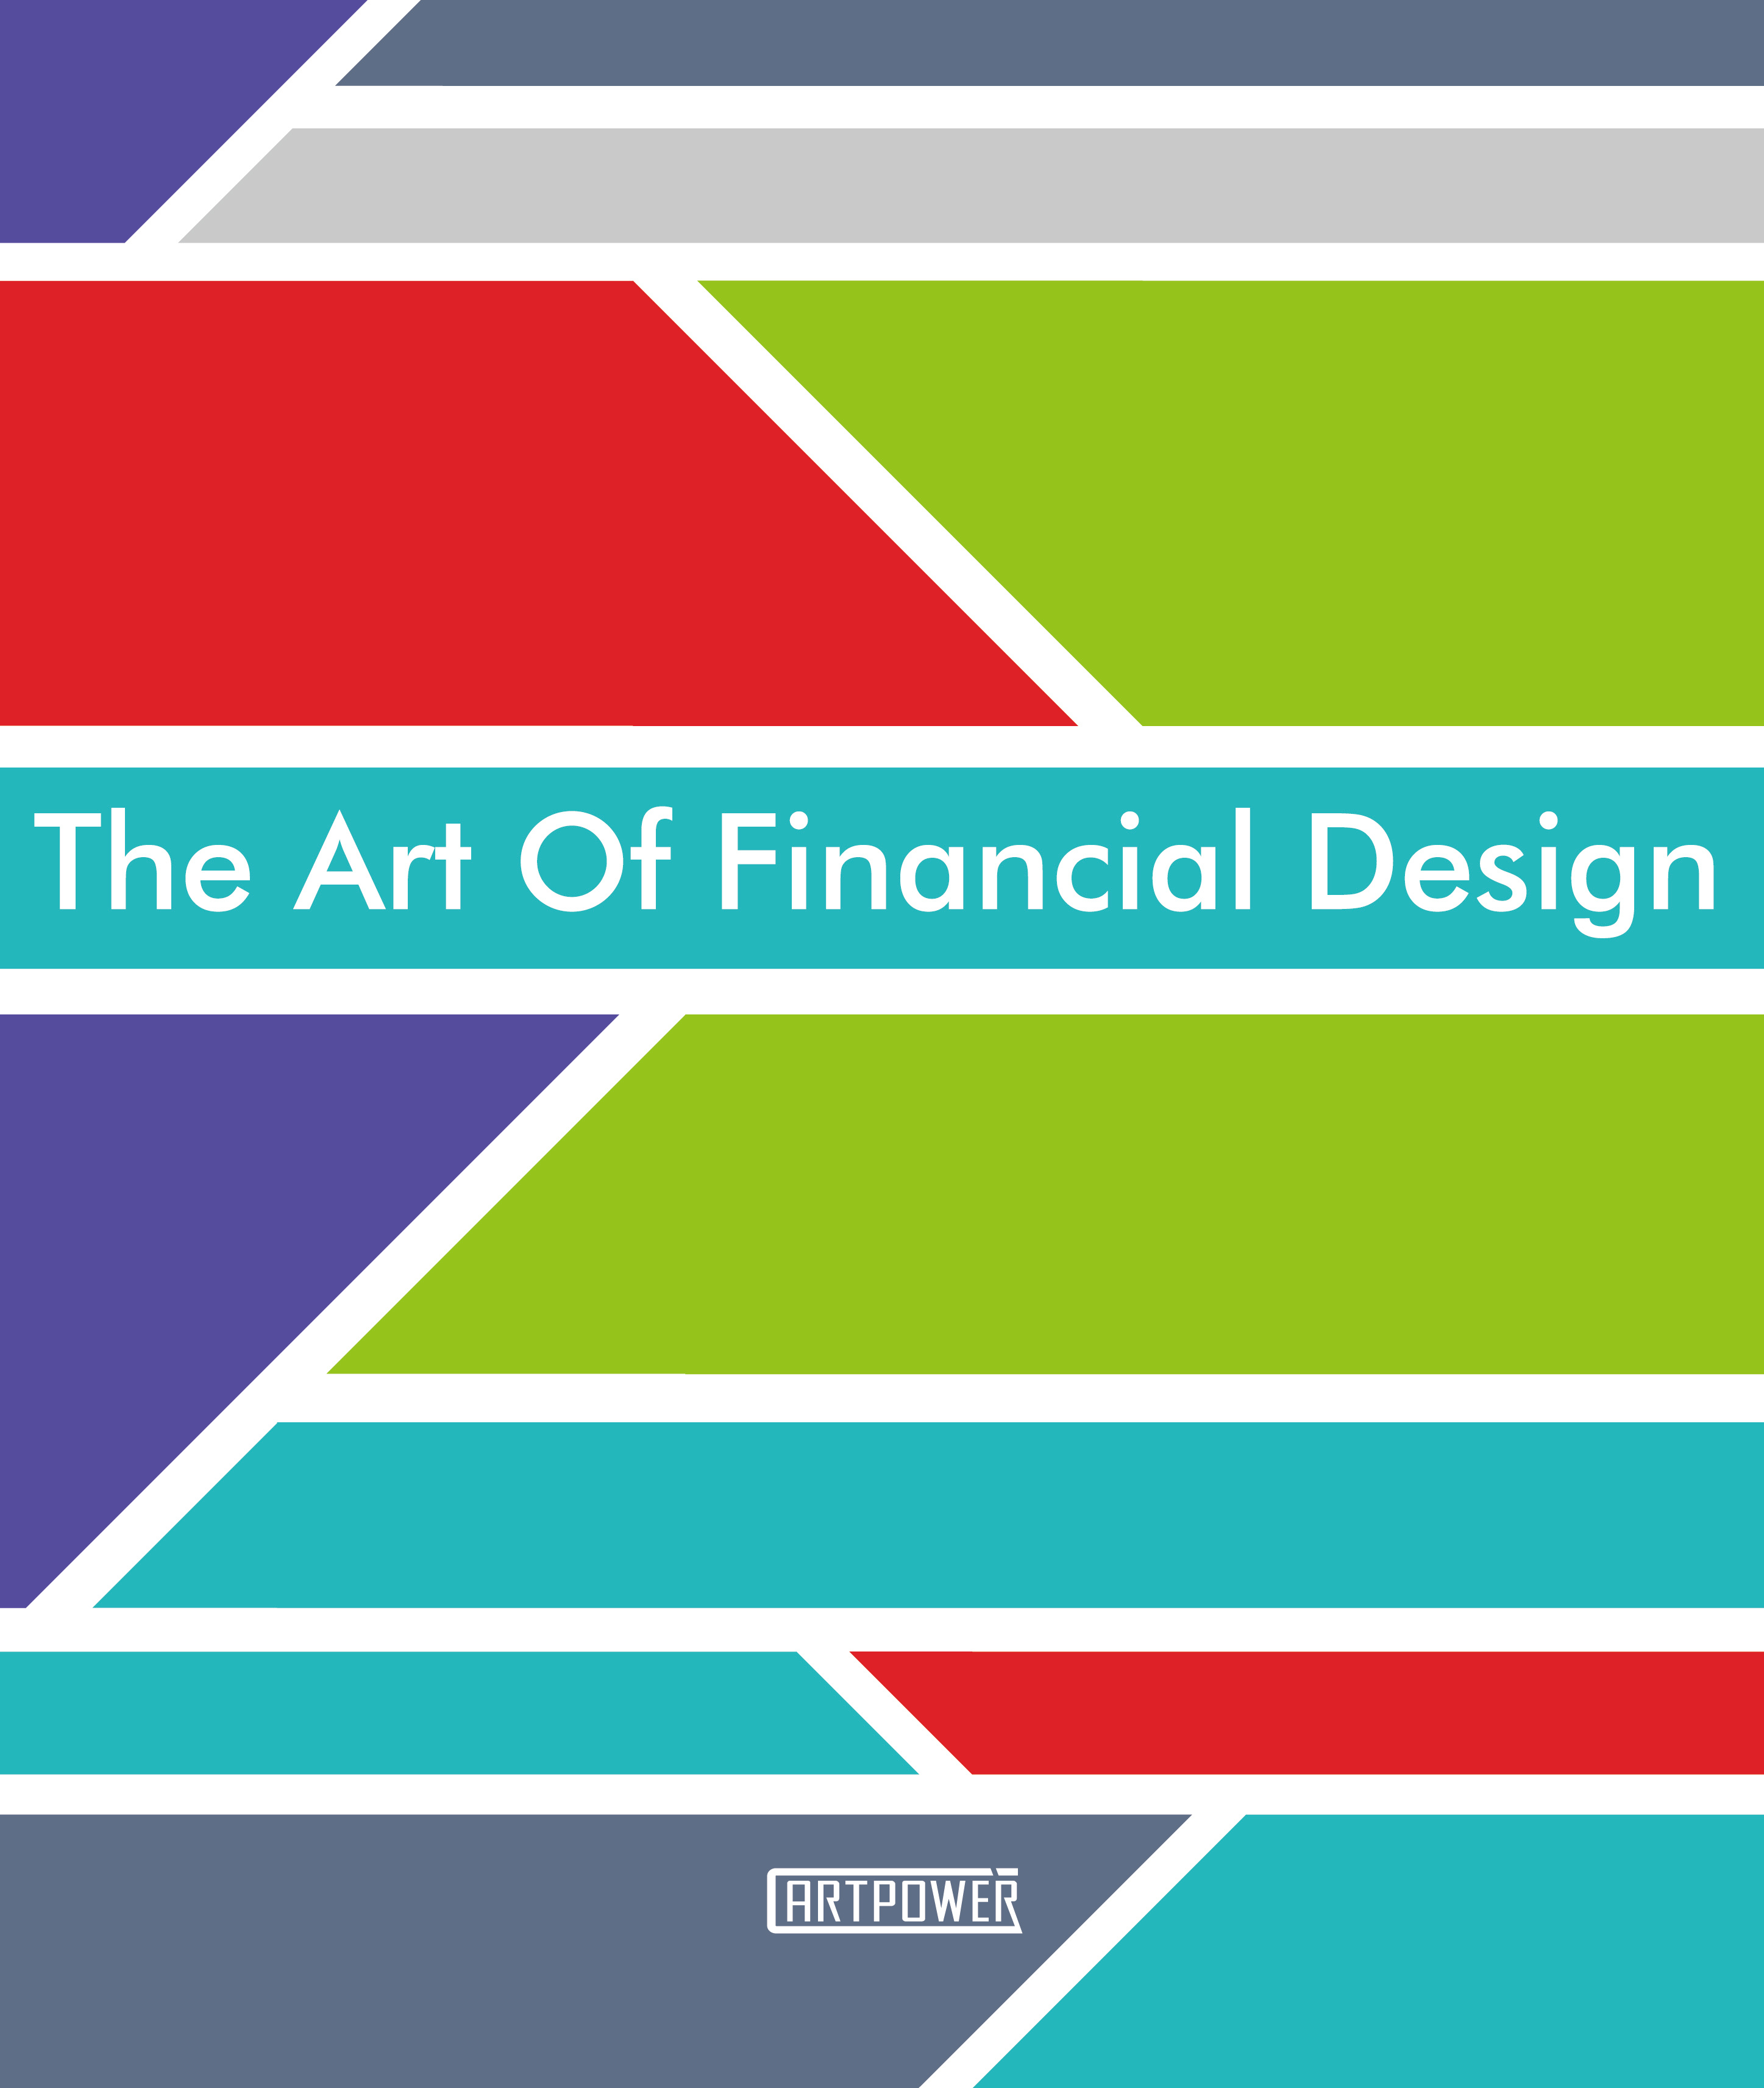 The Art of Financial Design-1